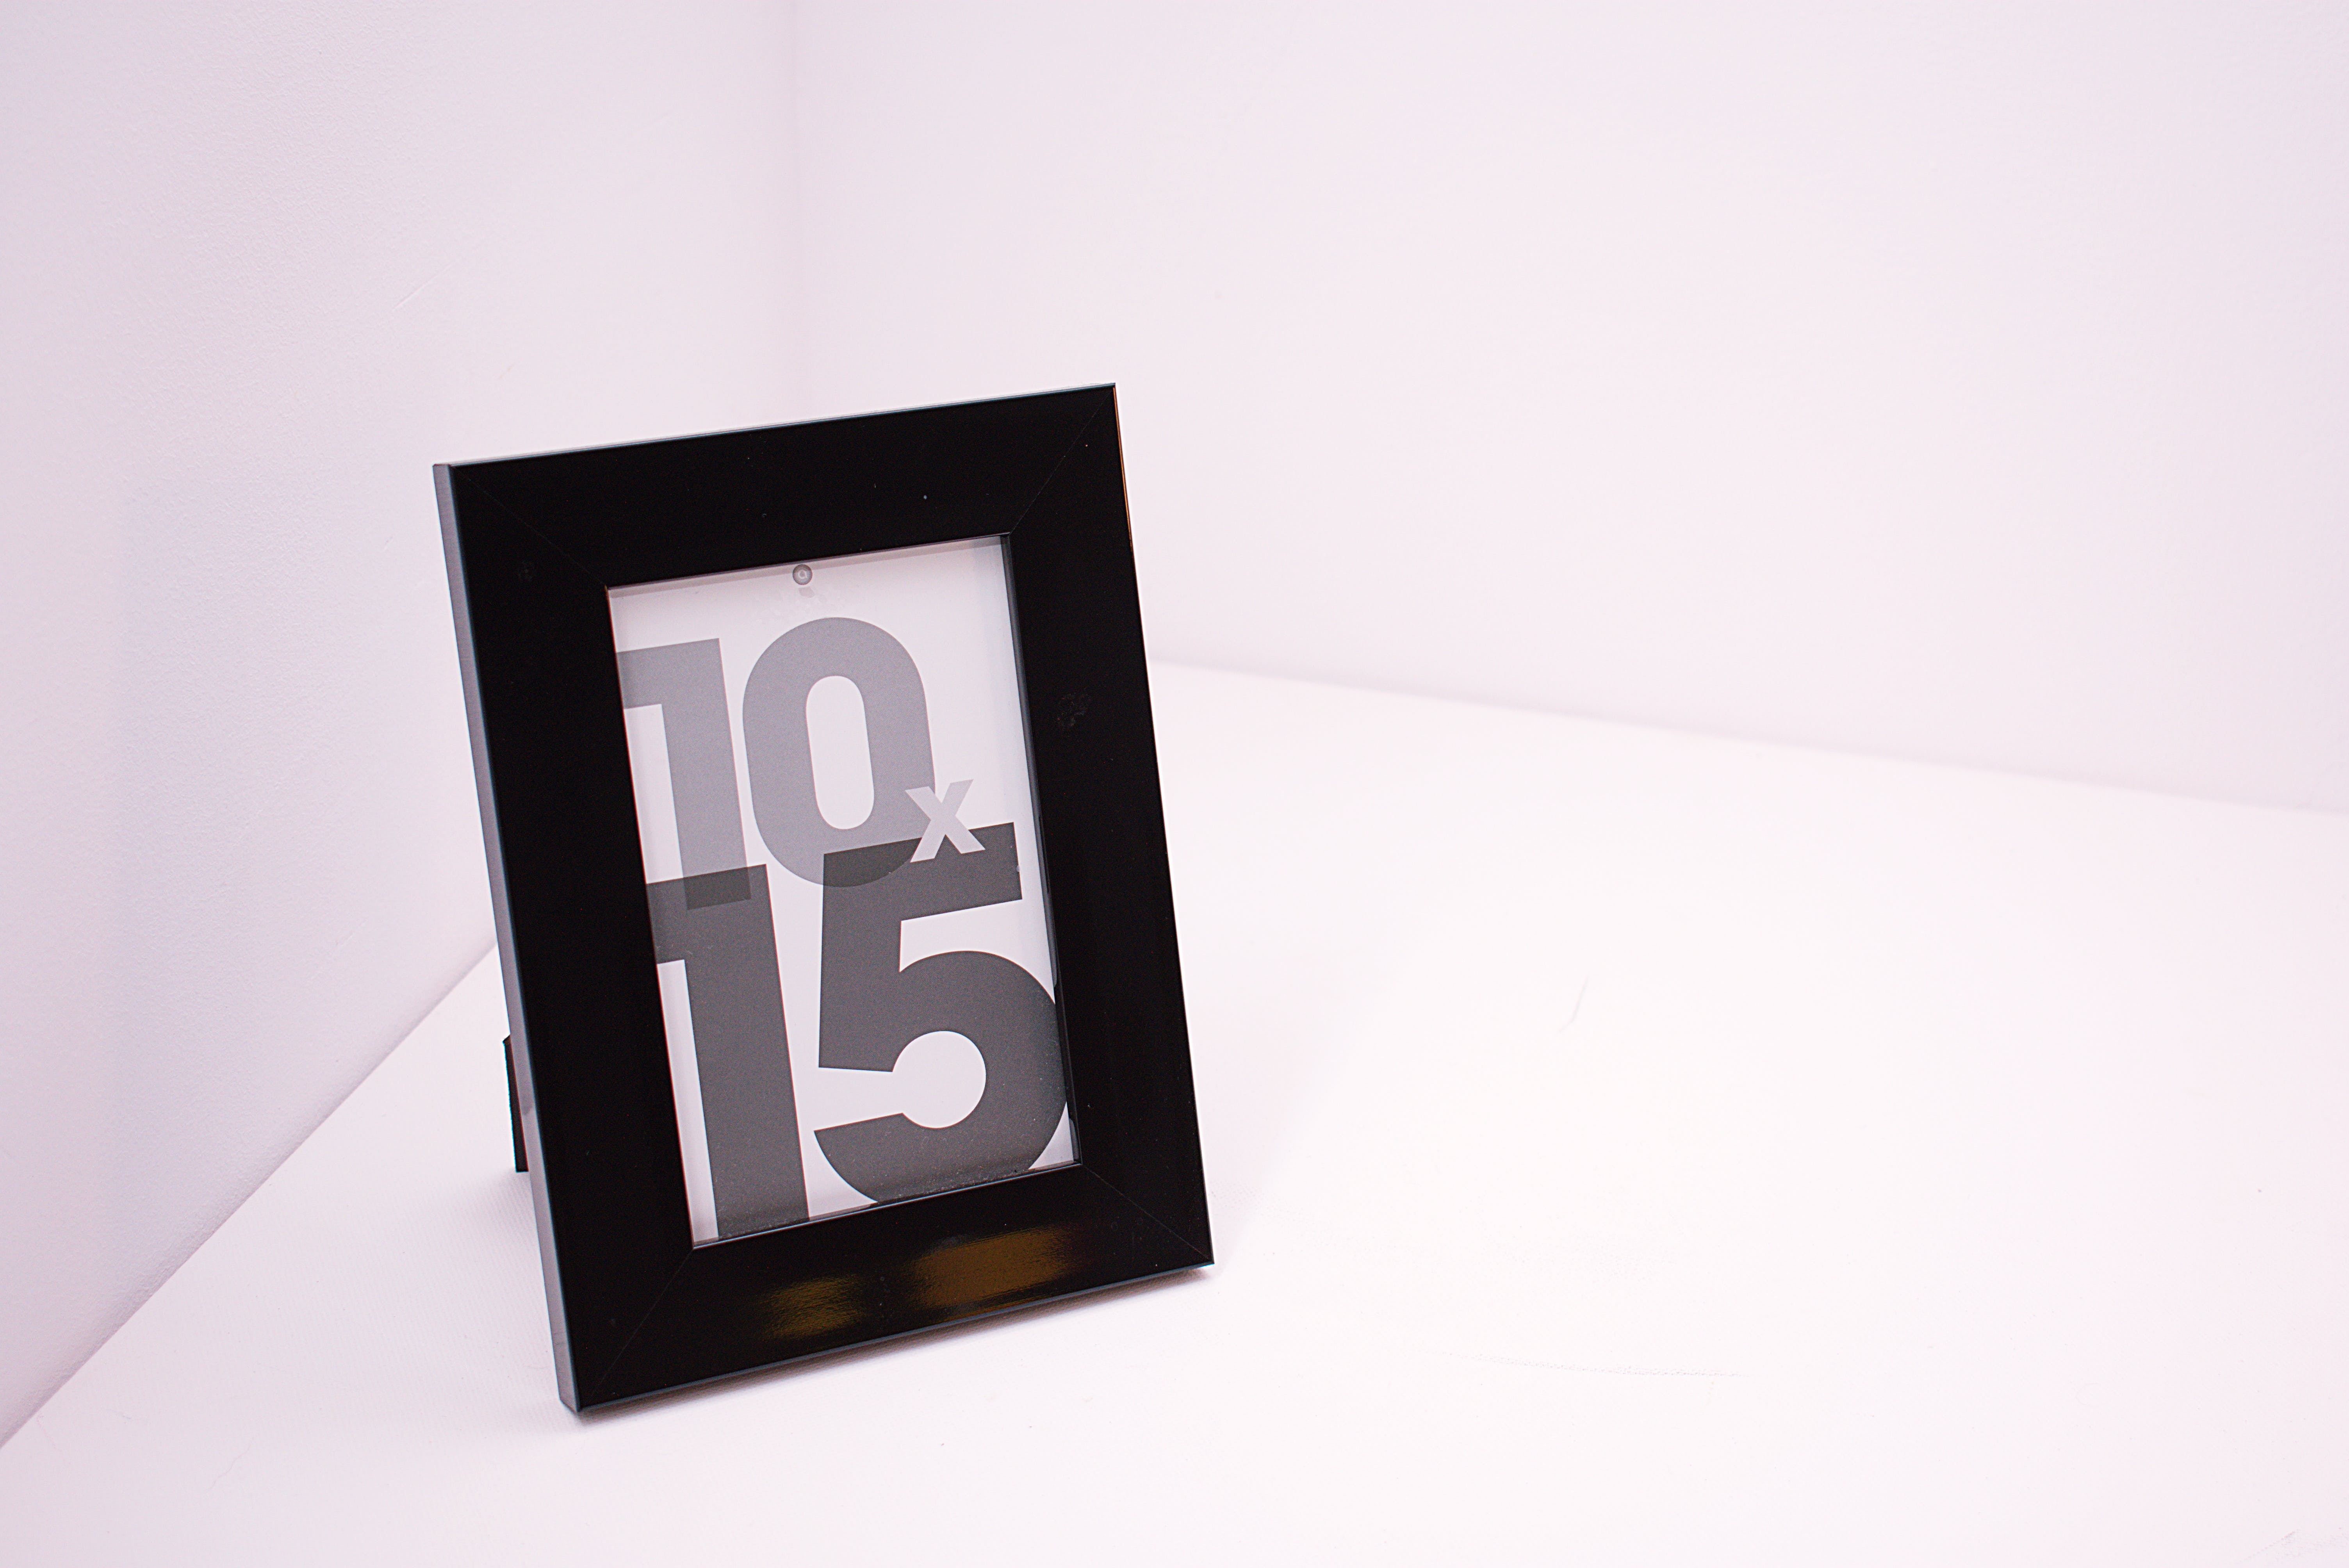 Square Black Photo Frame With 1015 Photo